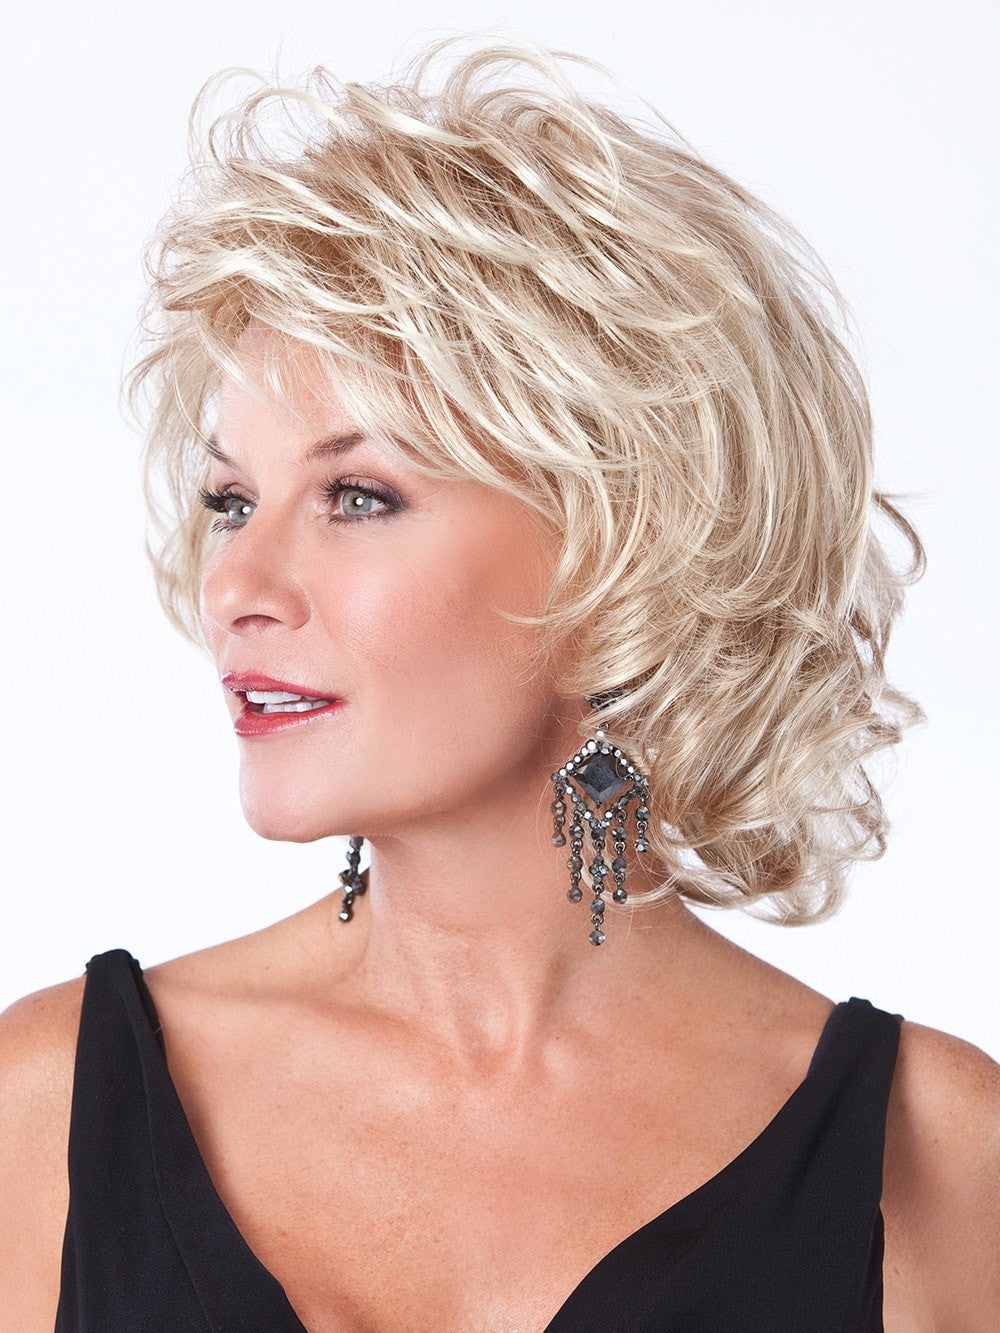 Alluring wig by toni brattin wigs the wig experts alluring wig by toni brattin in light blonde light ash blonde swedish blonde or pmusecretfo Gallery